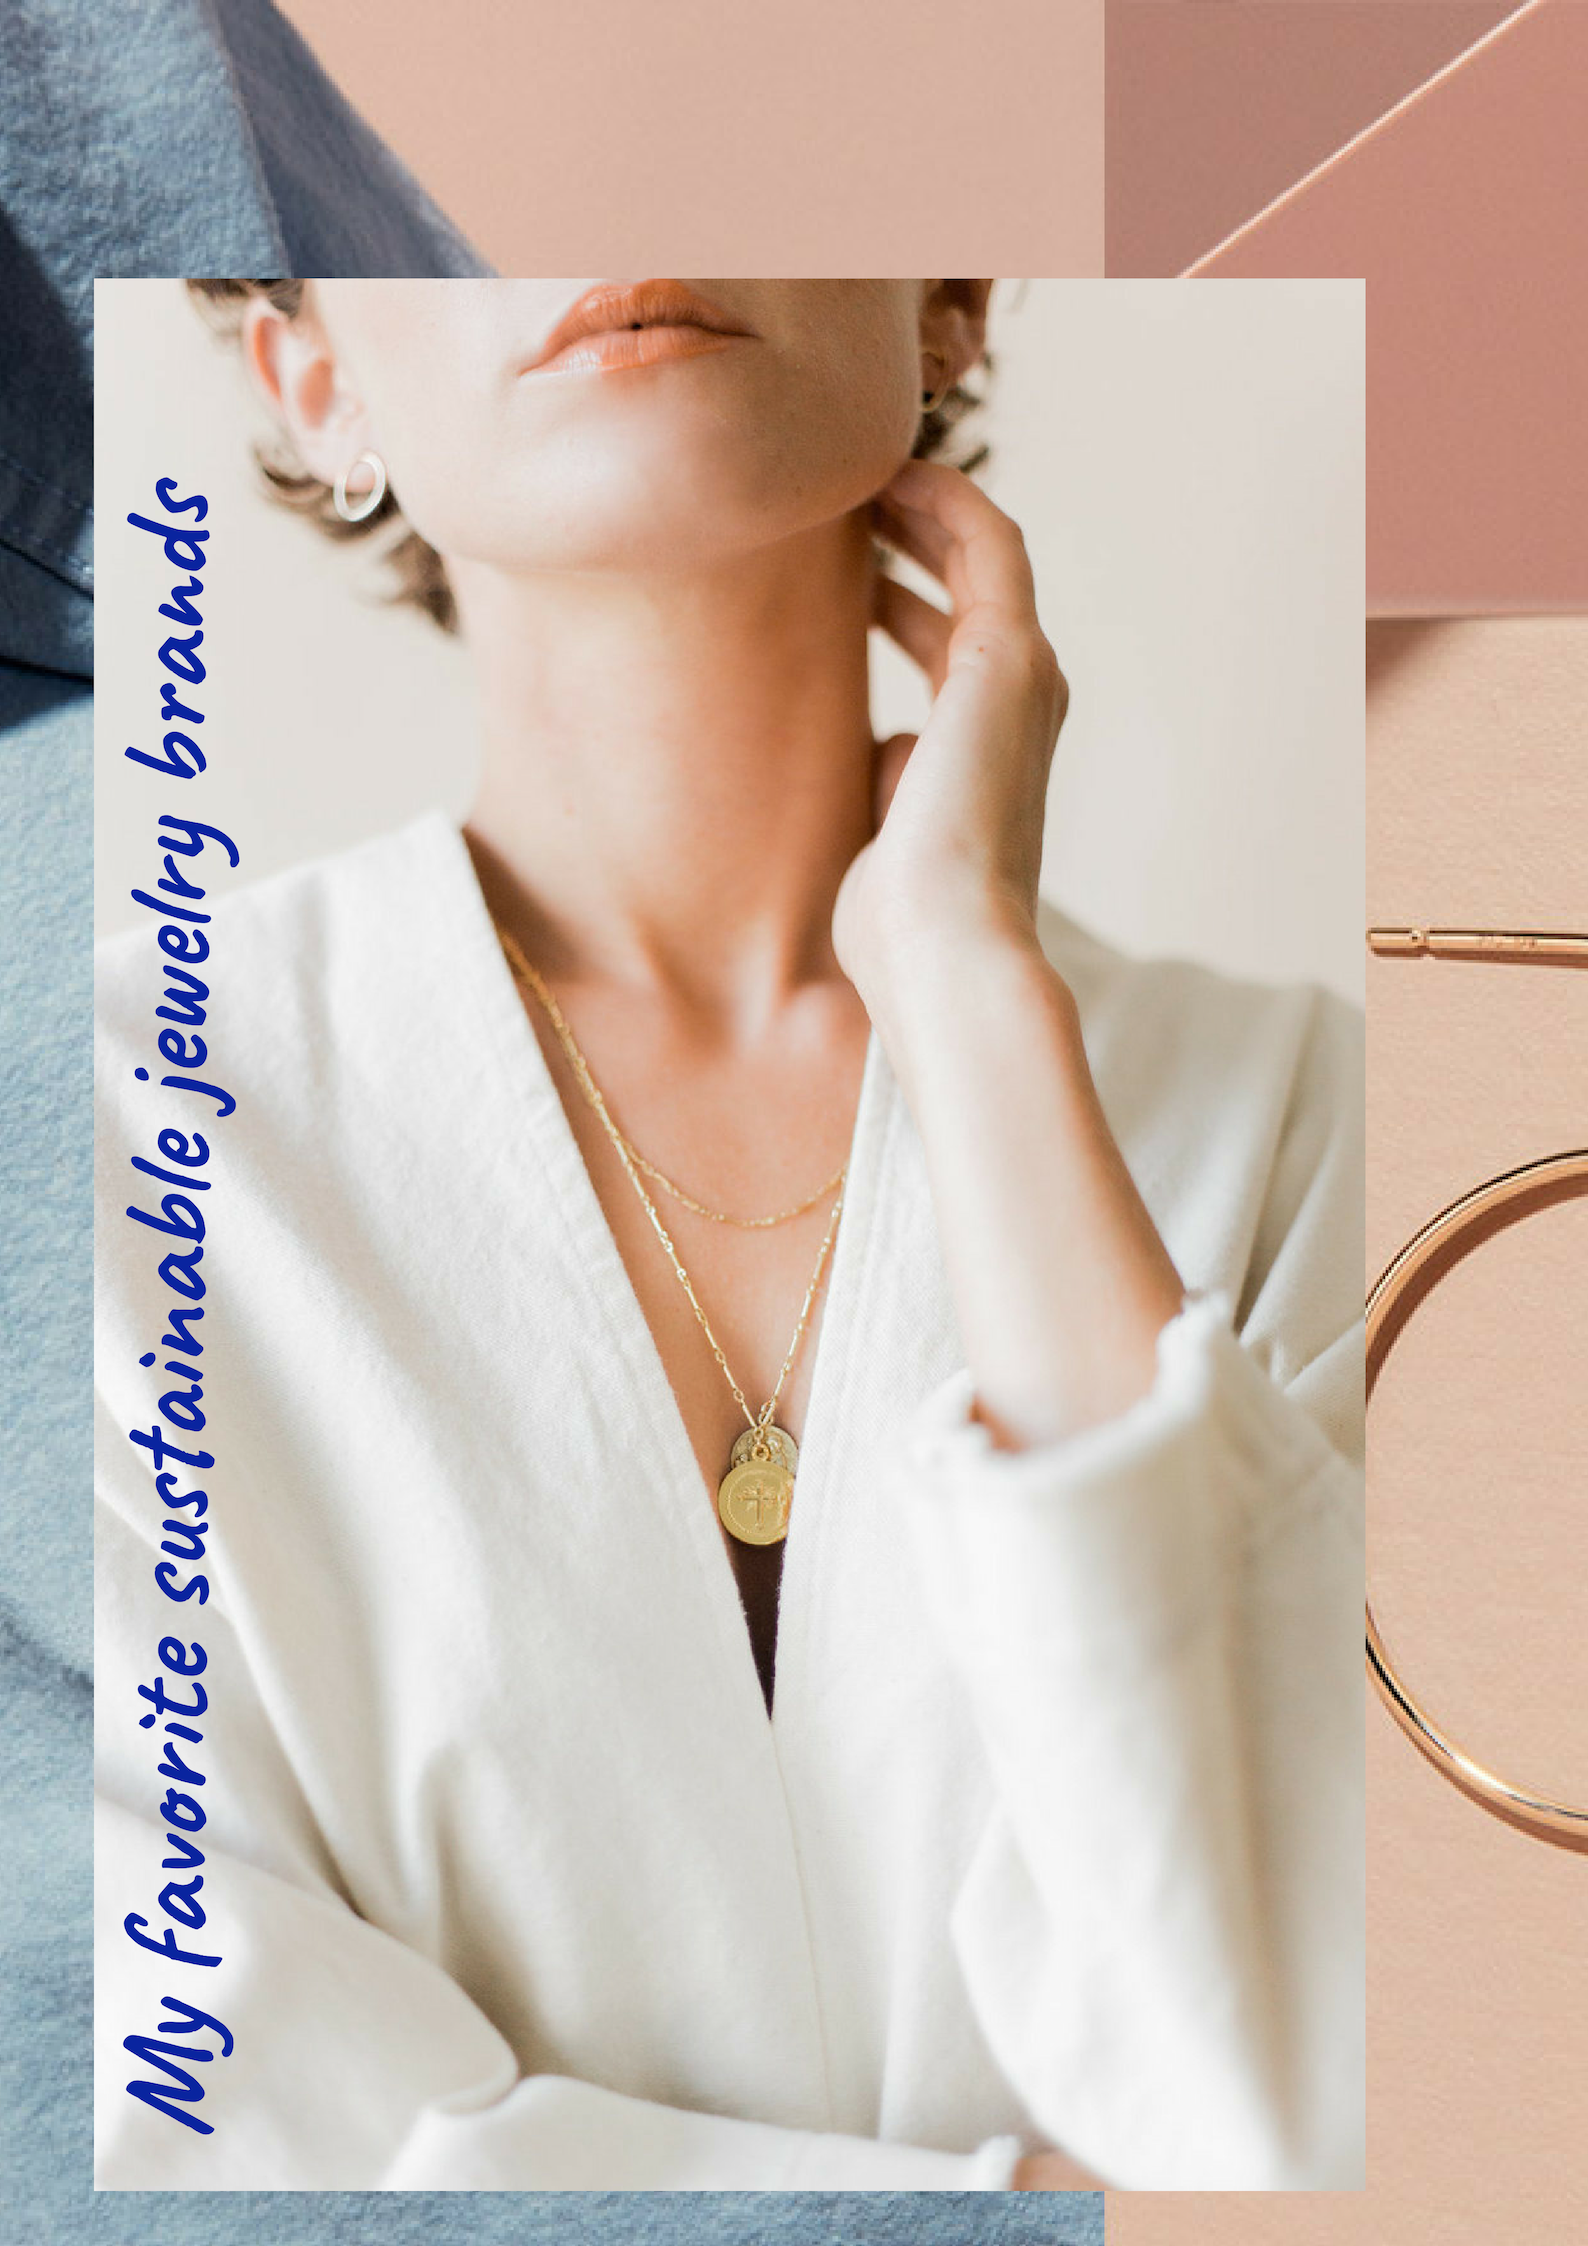 My favorite sustainable jewelry brands